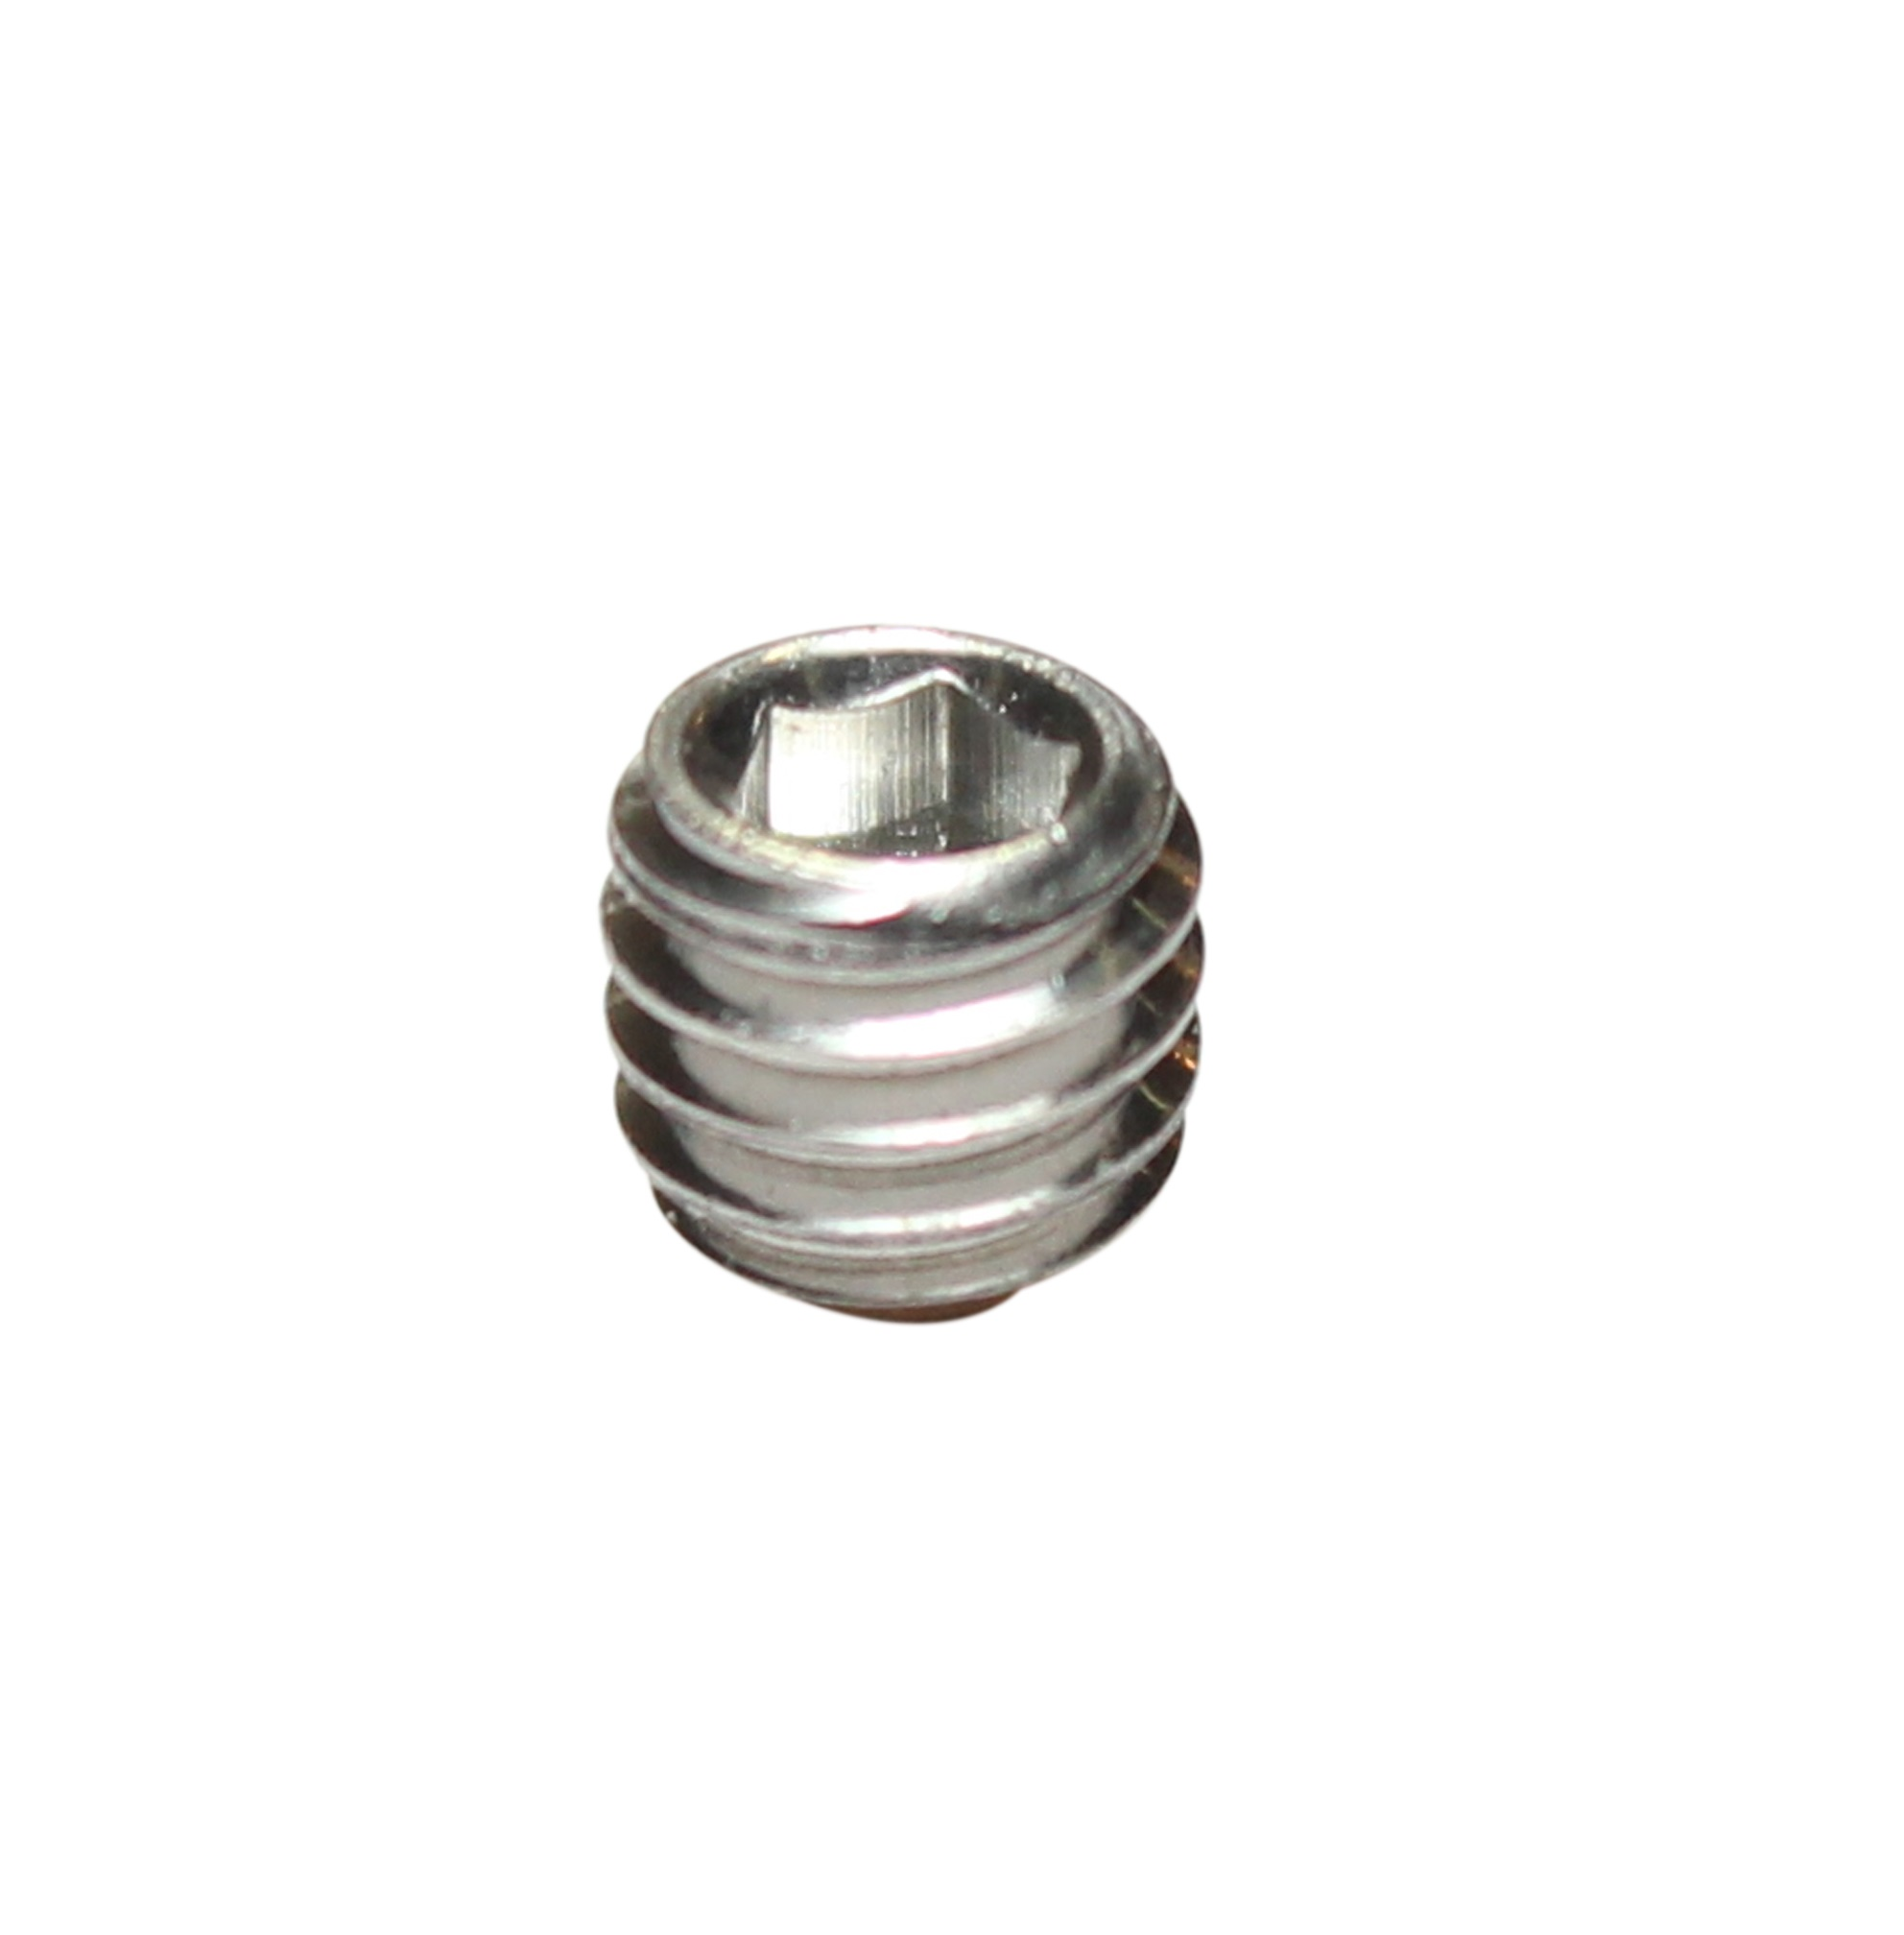 Labnet Knob Fixing Screw, All Volumes (Labnet)